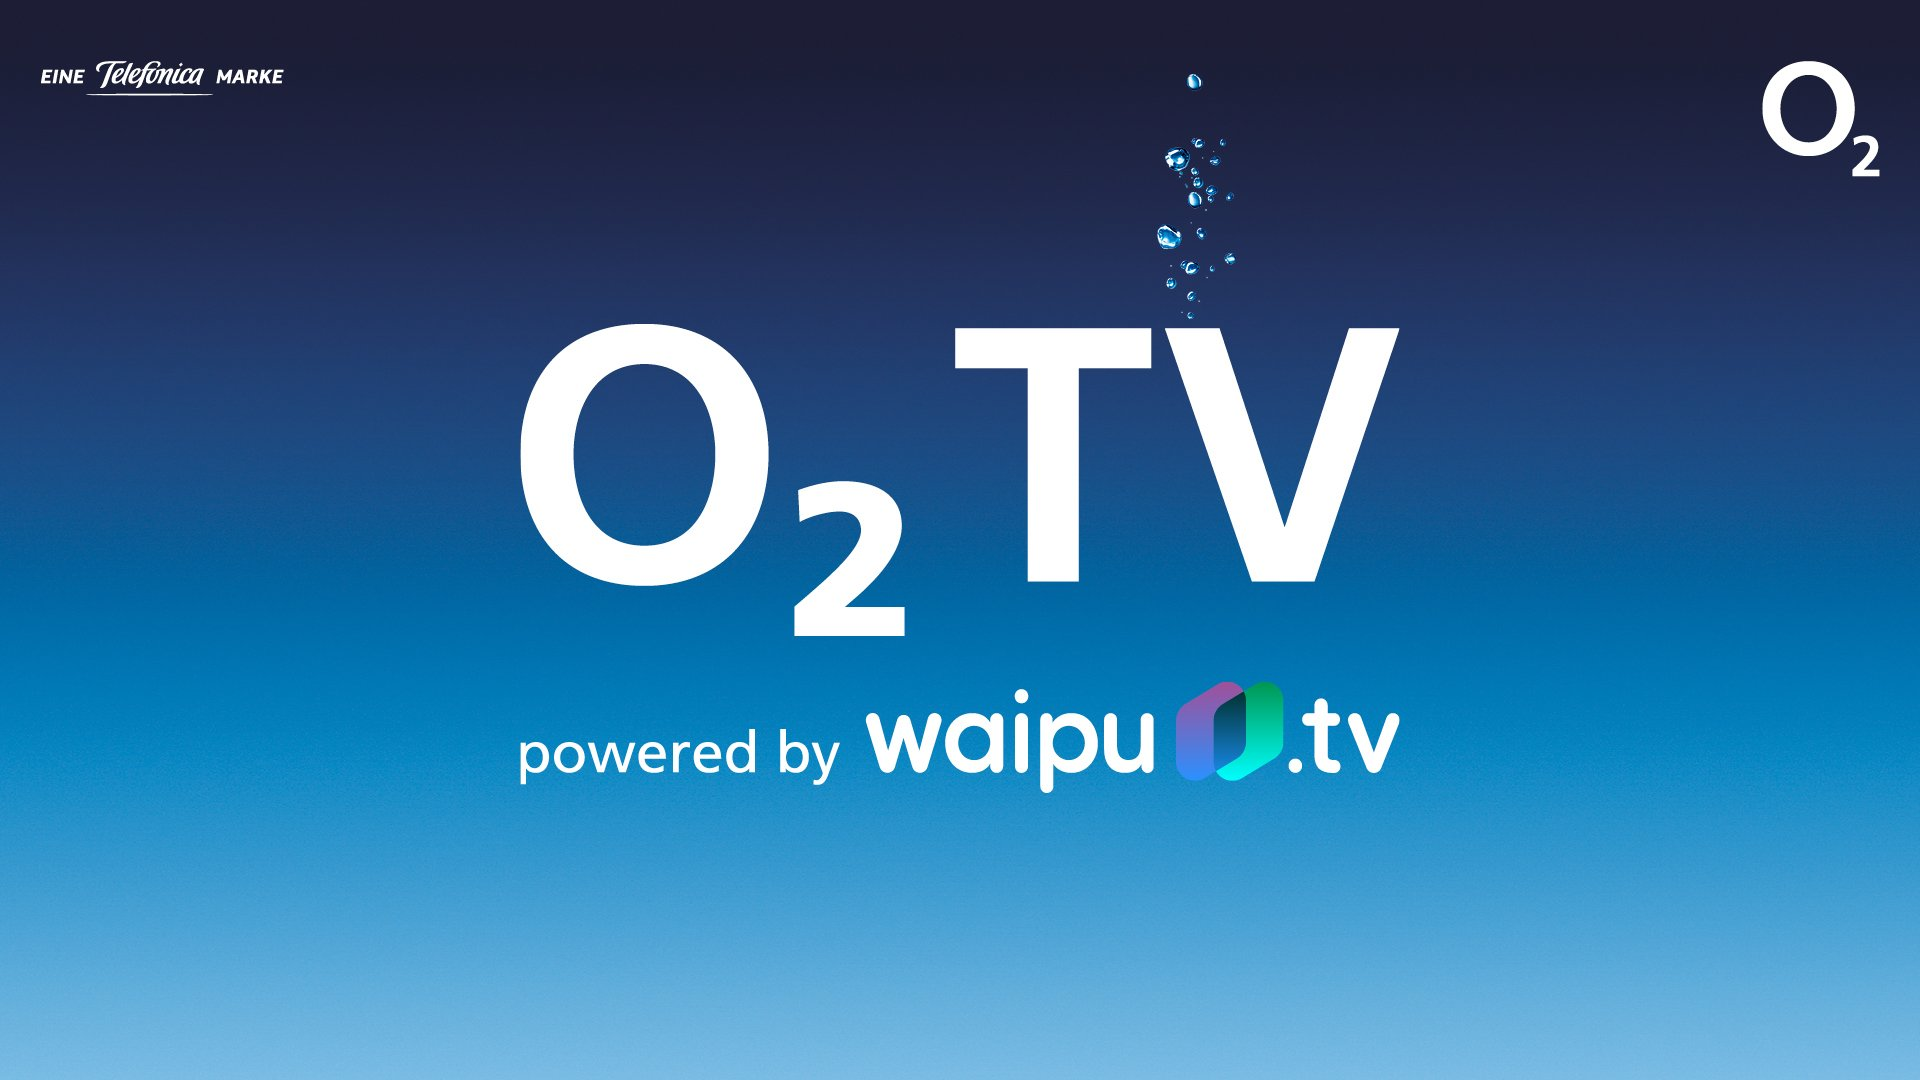 O2 TV: o2 startet Fernseh, TV  & Streaming Option mit waipu.tv 11